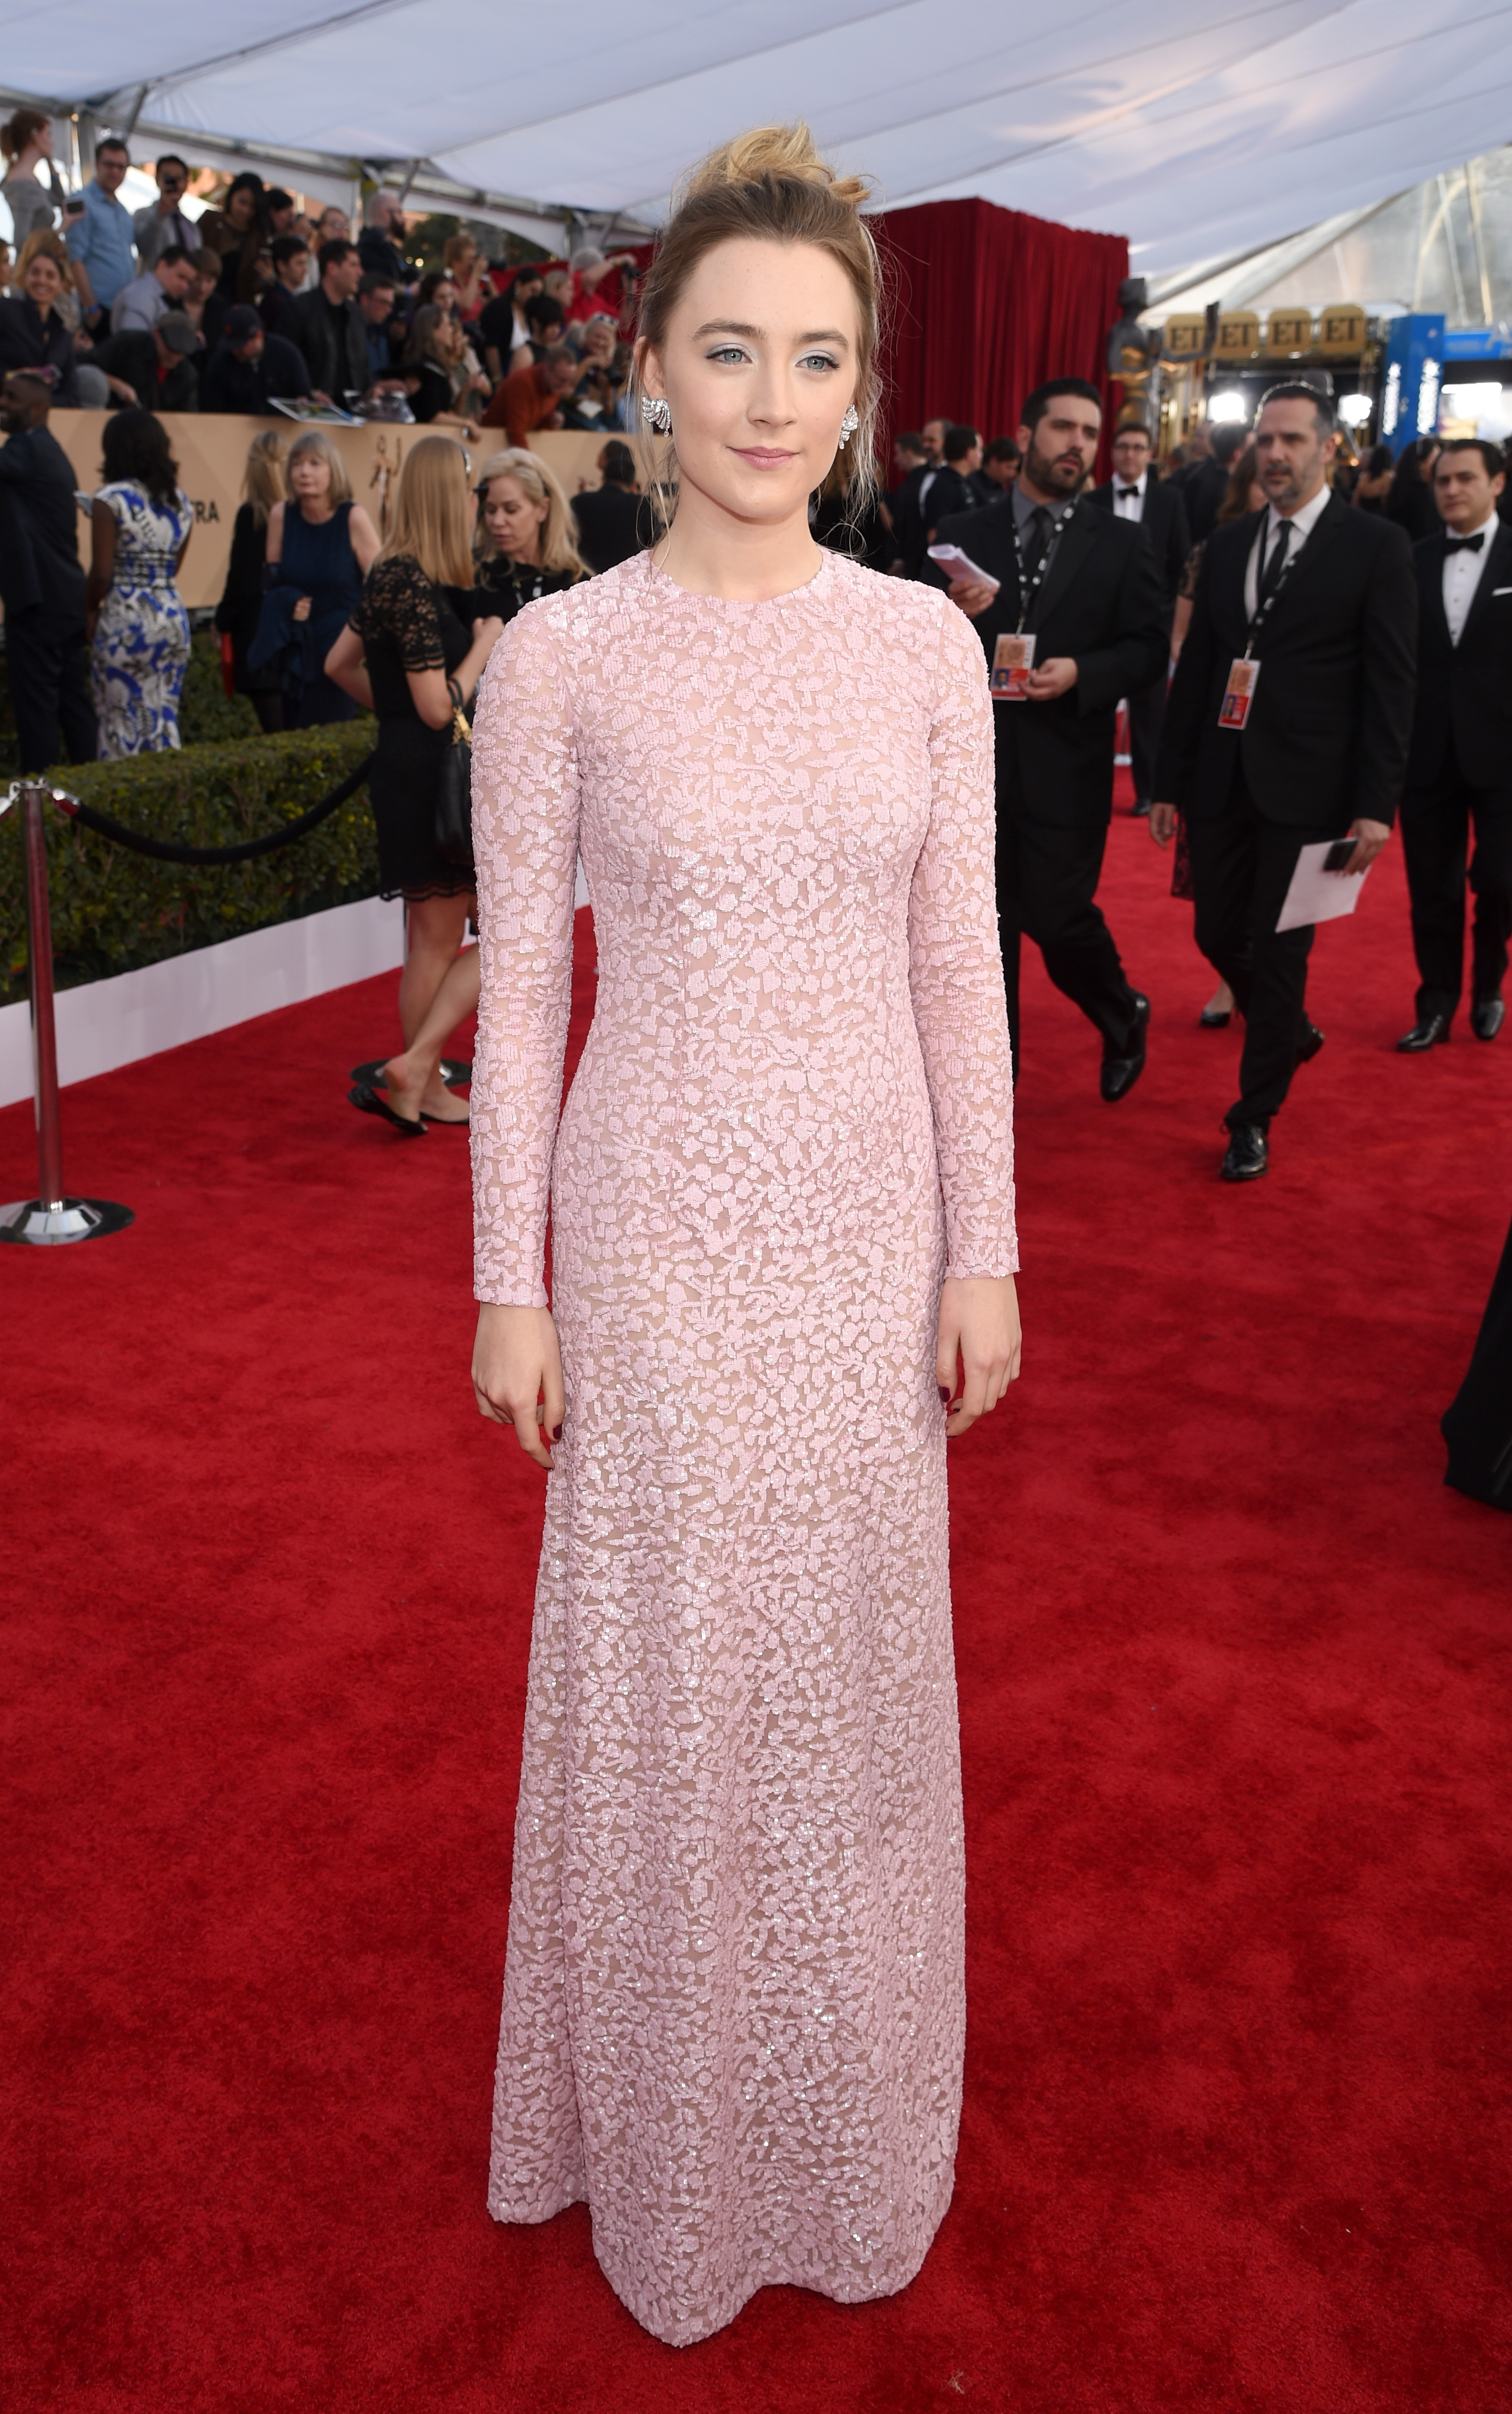 Saoirse Ronan in a pink Michael Kors gown at the 2016 SAG Awards